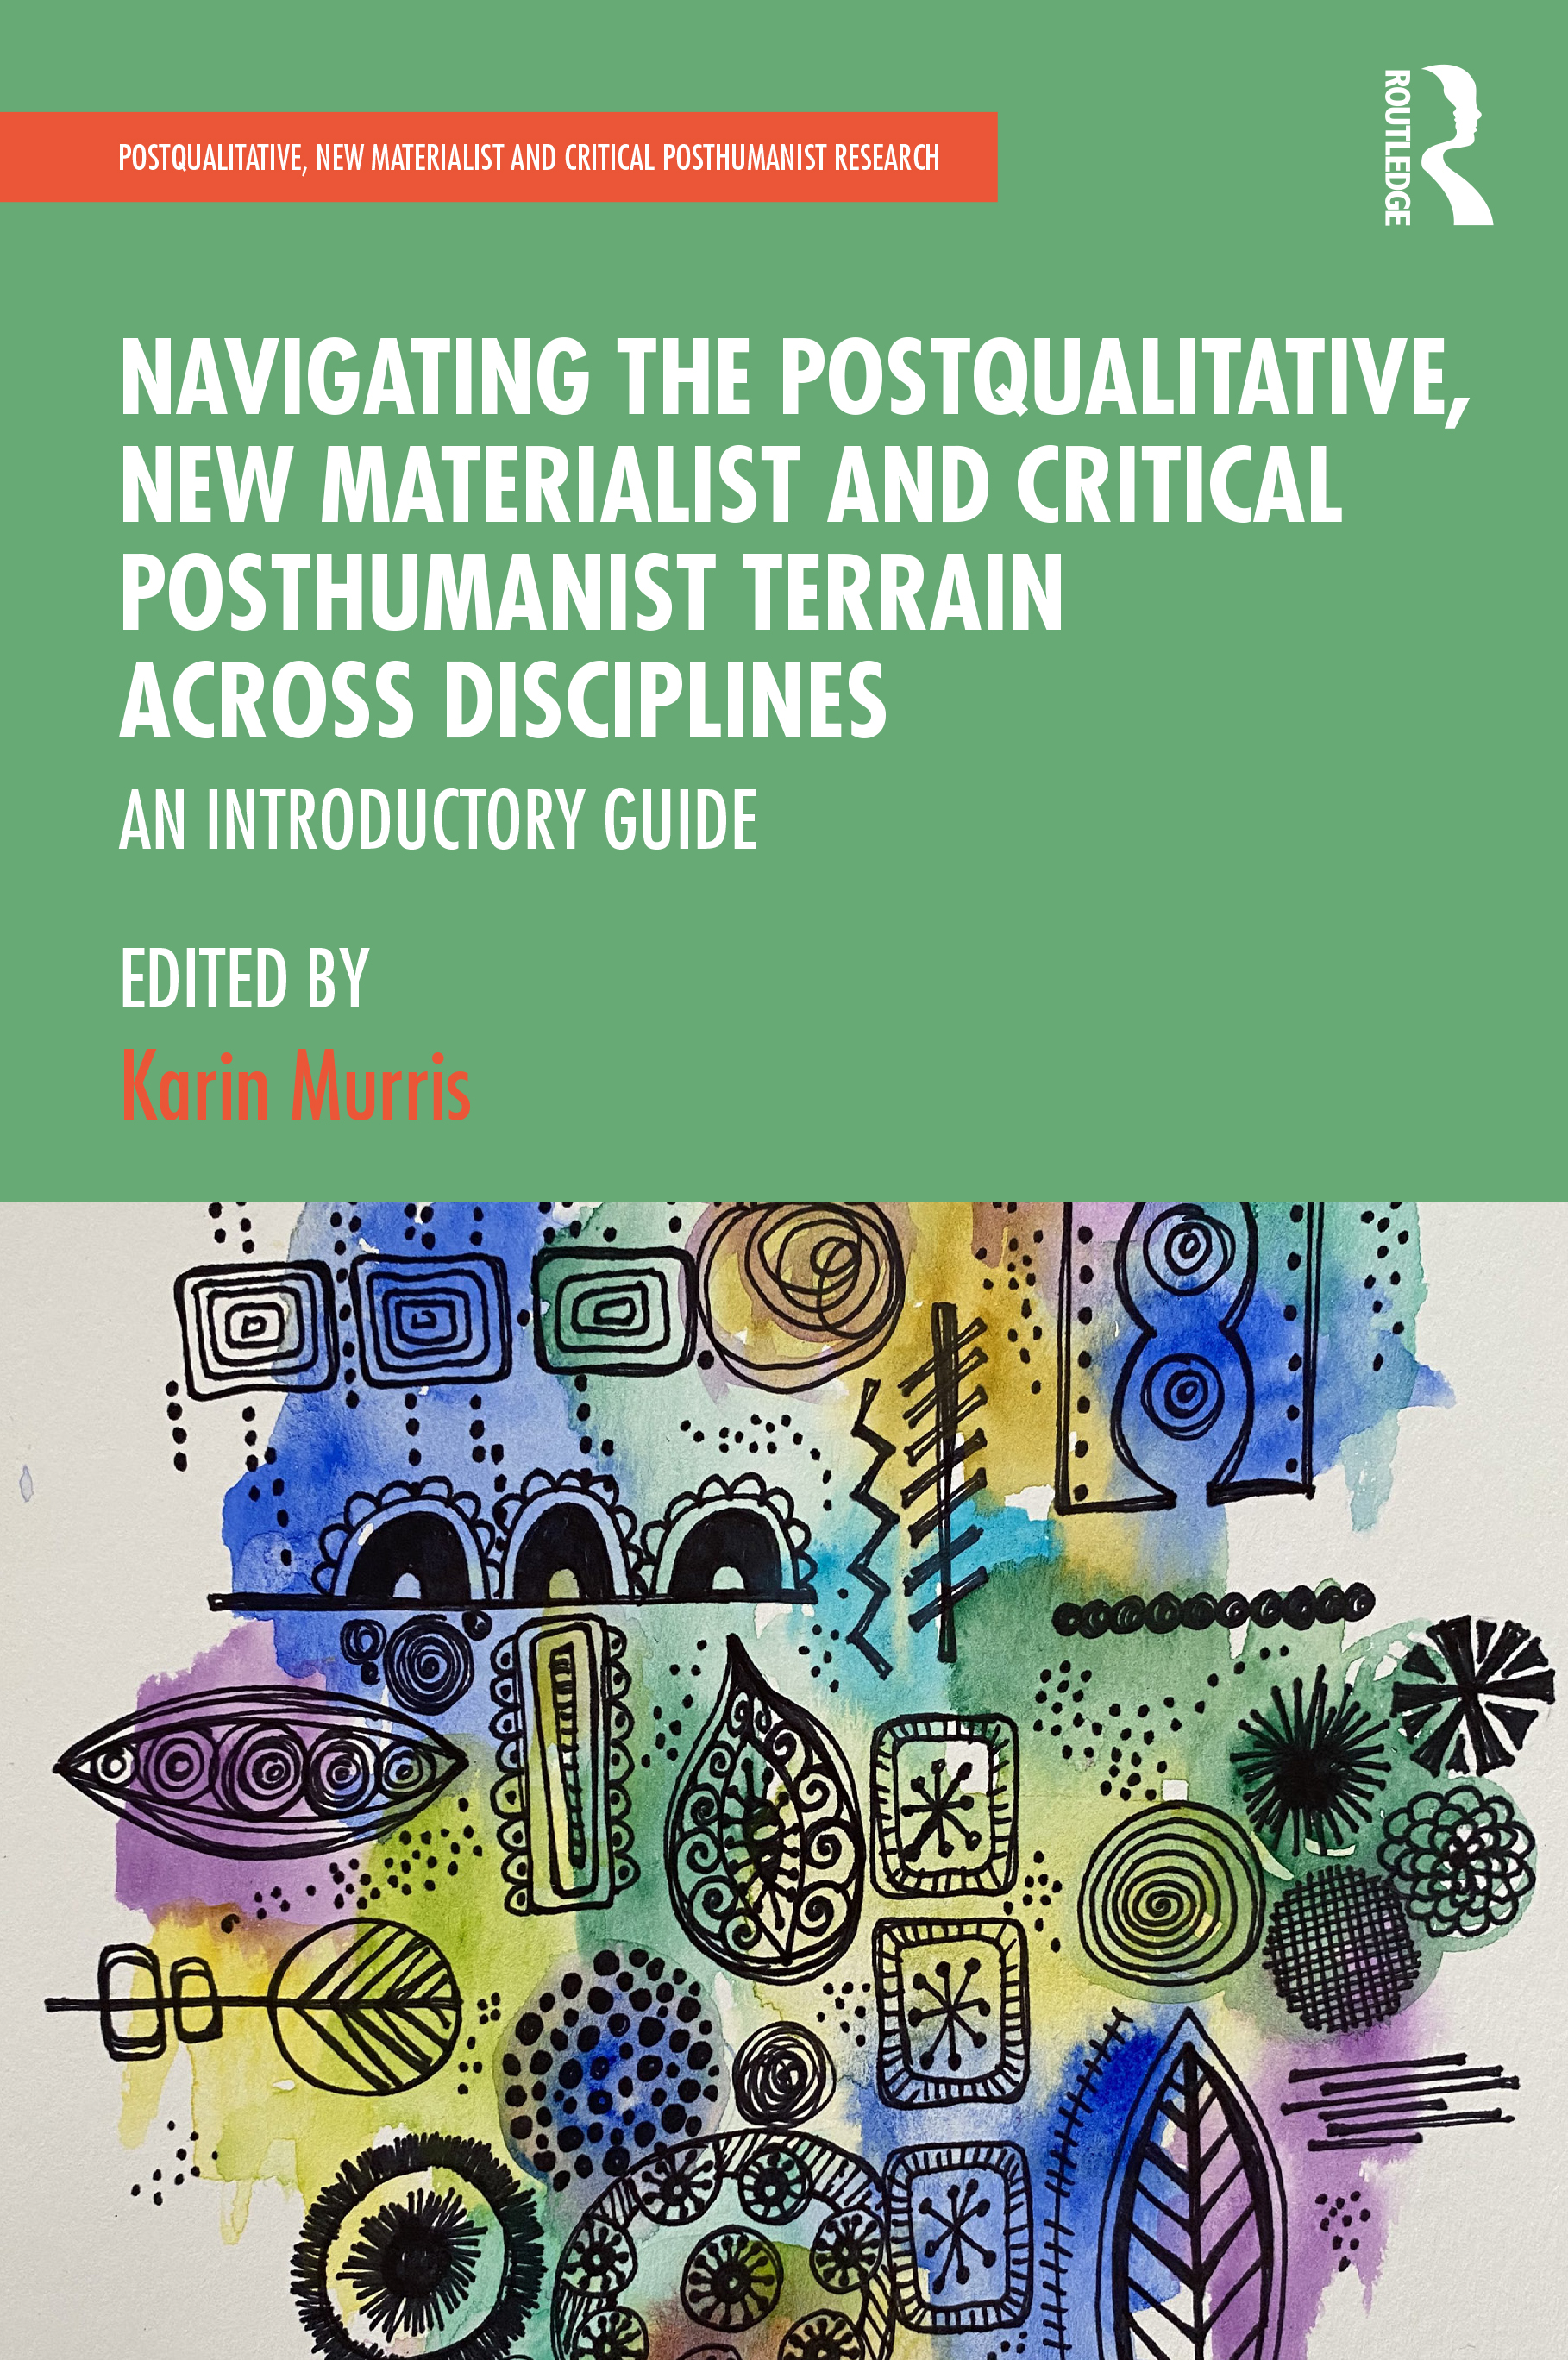 Navigating the Postqualitative, New Materialist and Critical Posthumanist Terrain Across Disciplines